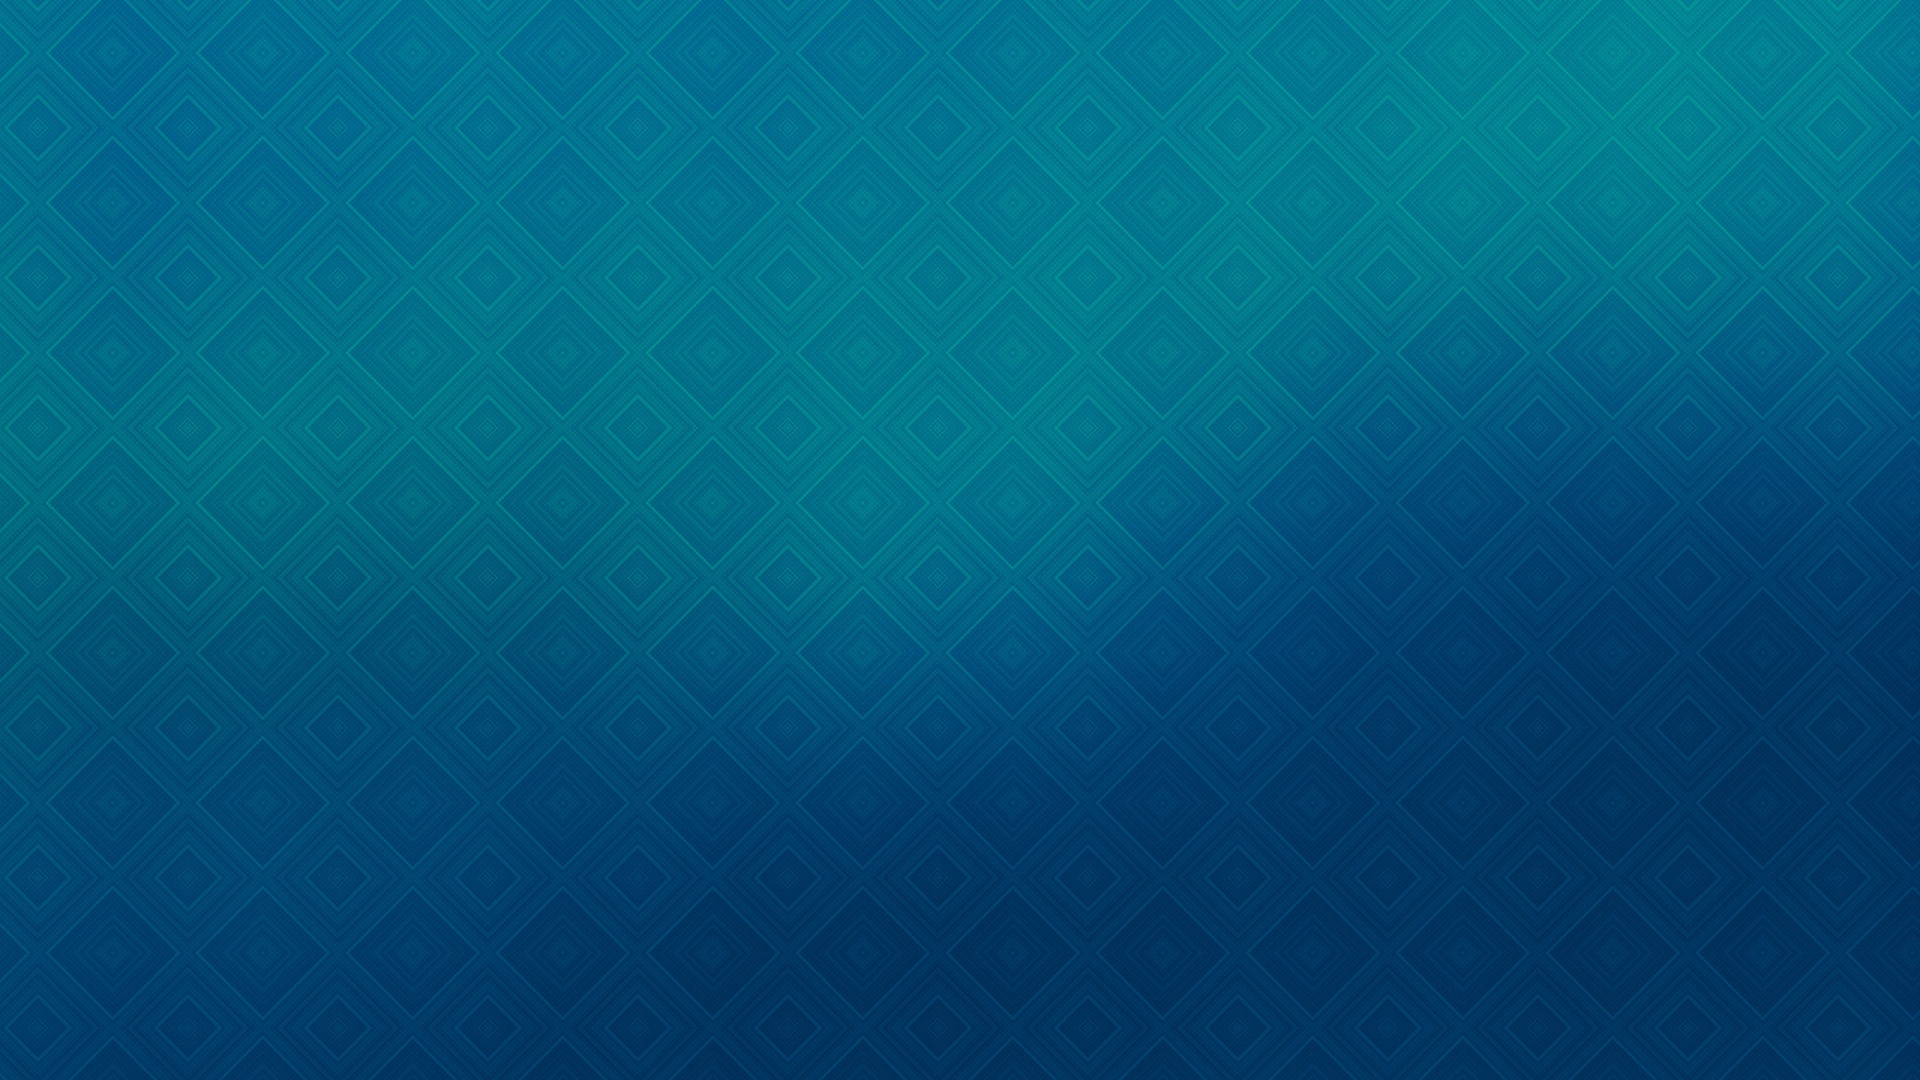 Simple Background Patterns 5905